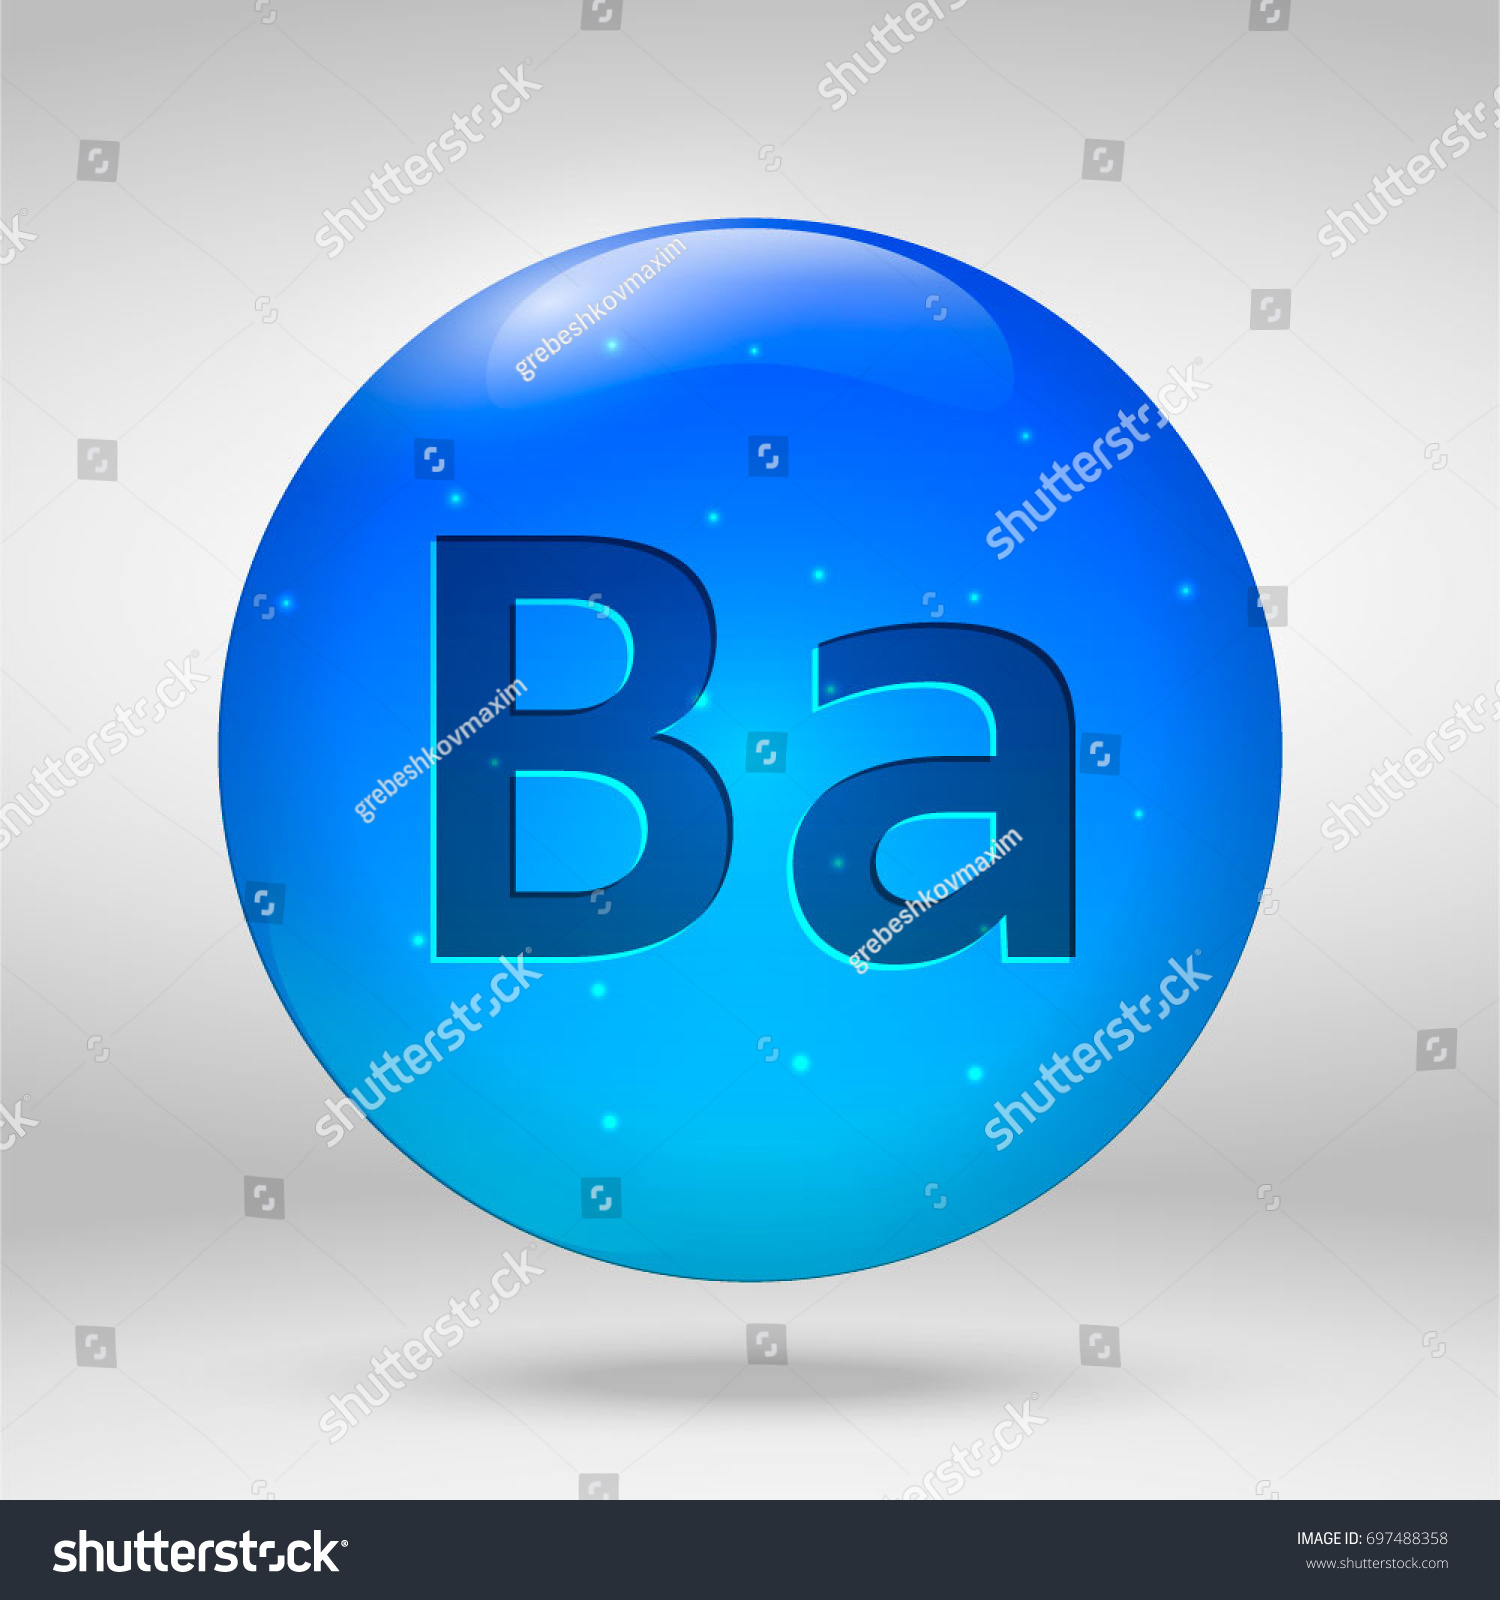 Barium element periodic table vector 3d stock vector 697488358 barium element of the periodic table vector 3d glossy drop pill capsule icon gamestrikefo Image collections